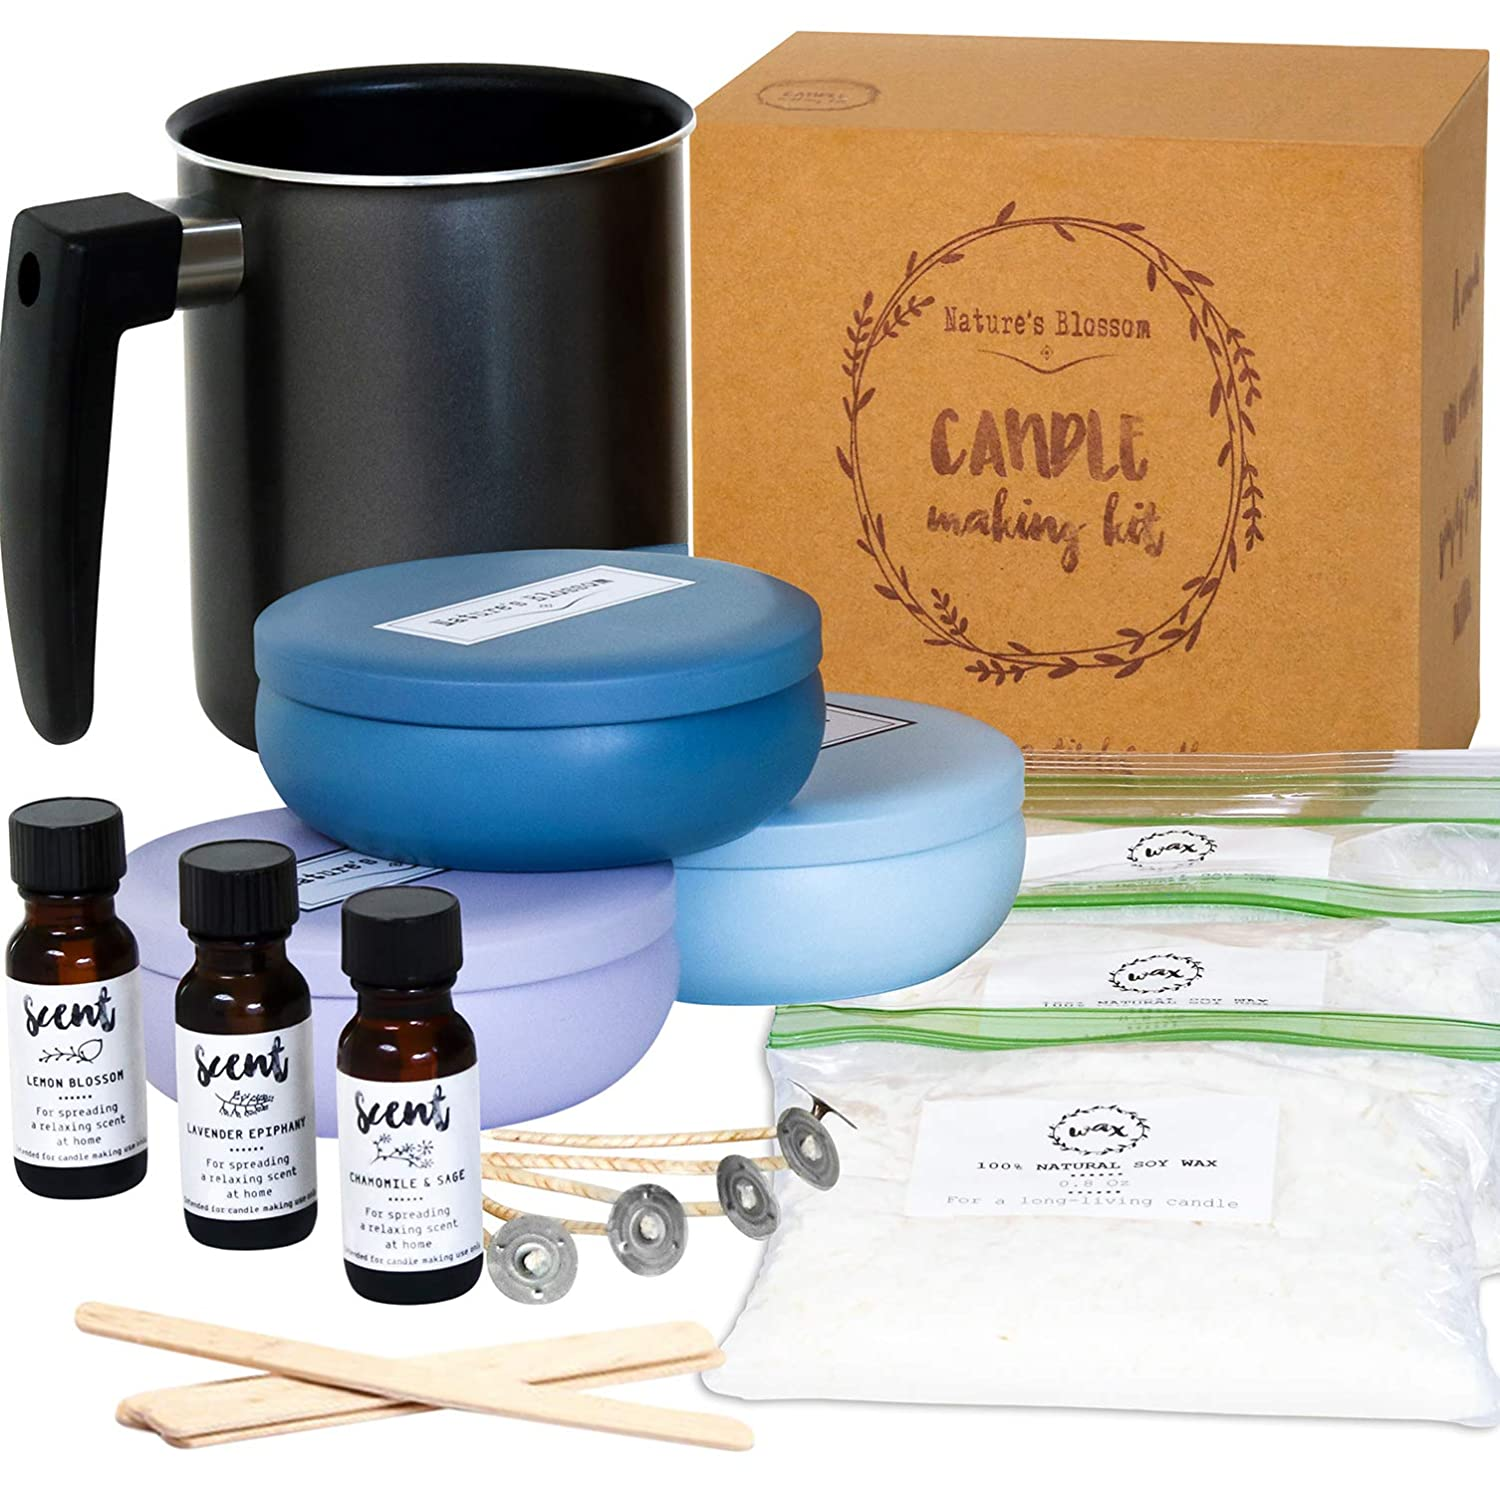 Nature's Blossom Candle Making Kit - DIY Starter Set to Create Premium Large Scented Candles. Included Supplies: Soy Wax, Melting Pitcher, Tin Containers, Wicks, Lemon, Lavender & Chamomile Fragrances Candle making supplies set